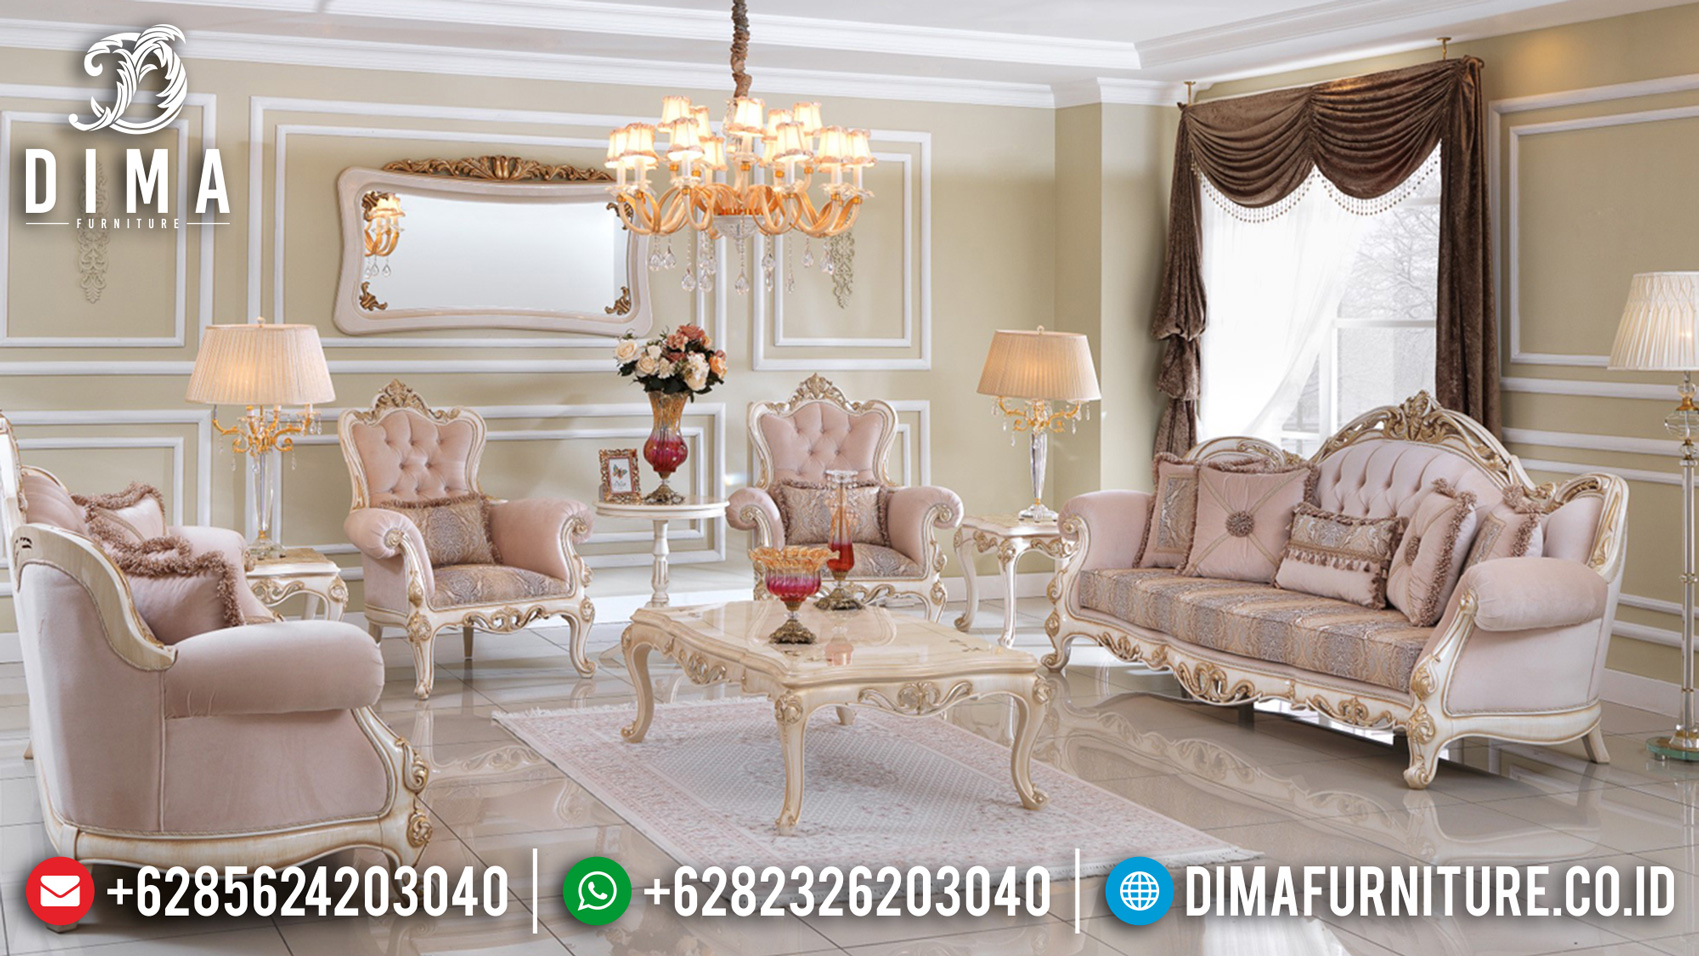 New Set Sofa Tamu Mewah Ukiran Jepara Luxurian Type Elegant Living Room TTJ-1040